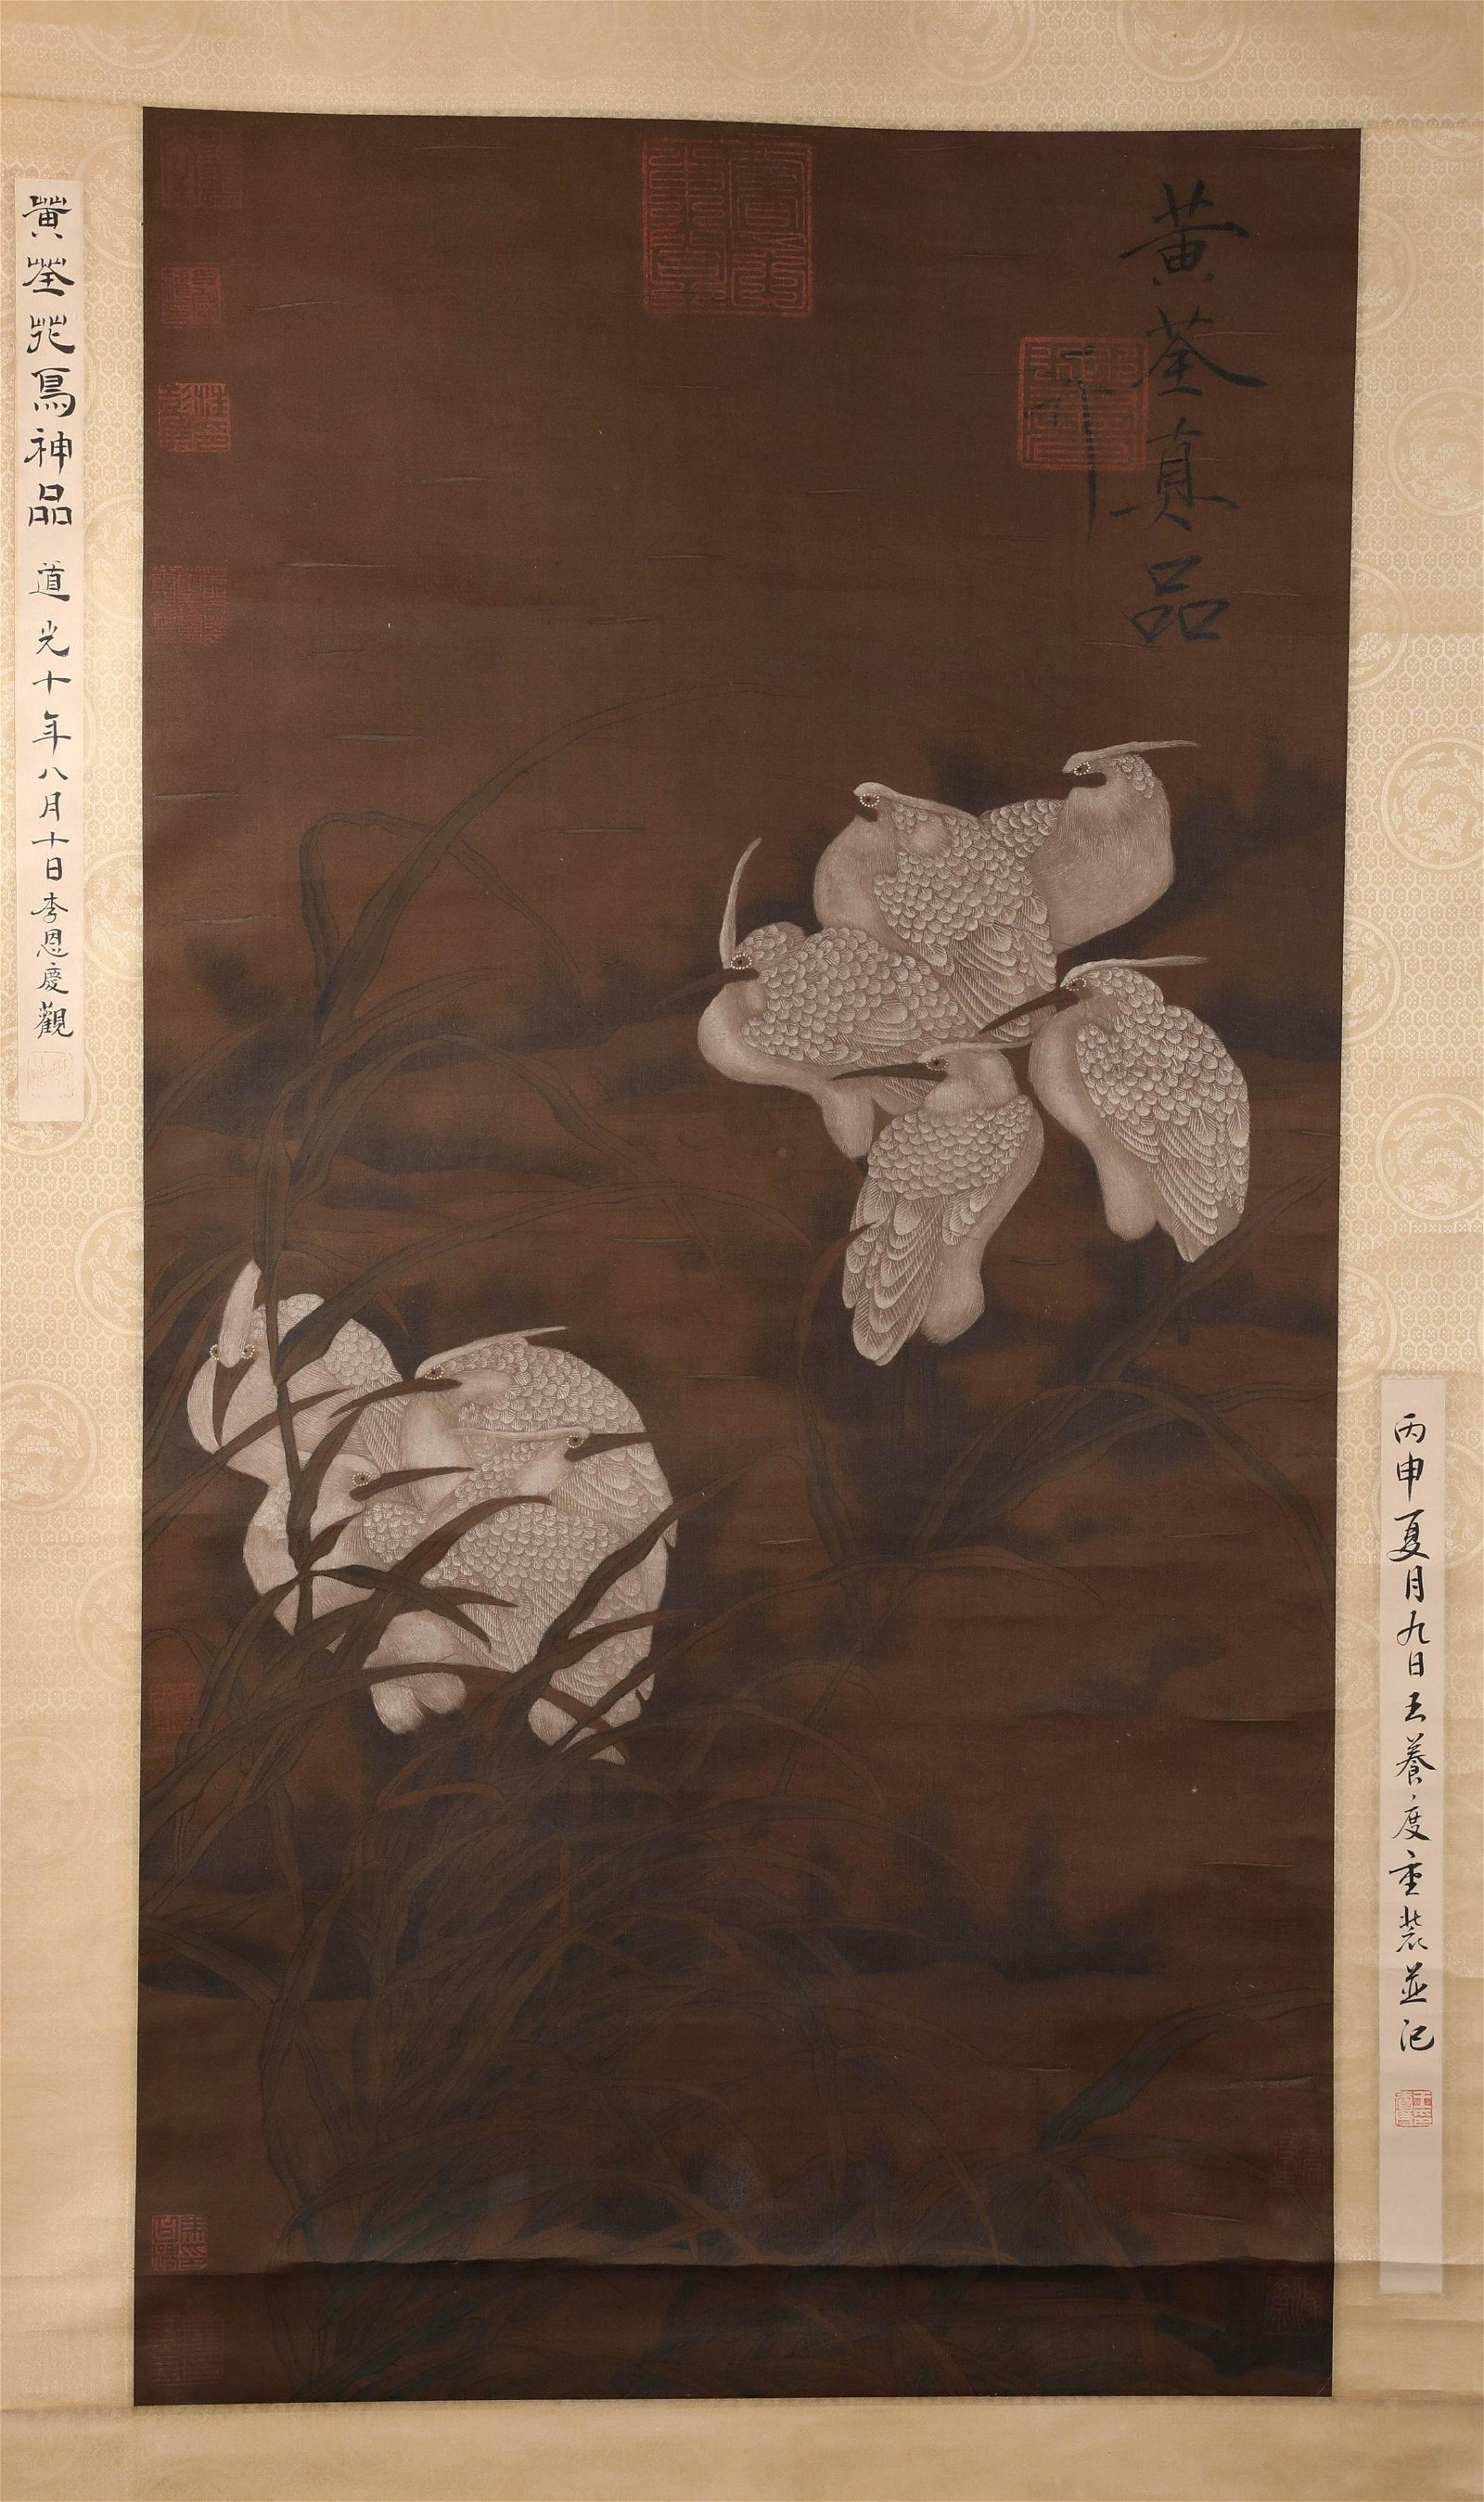 A  Chinese Hand-drawn Painting Signed by Badashanren